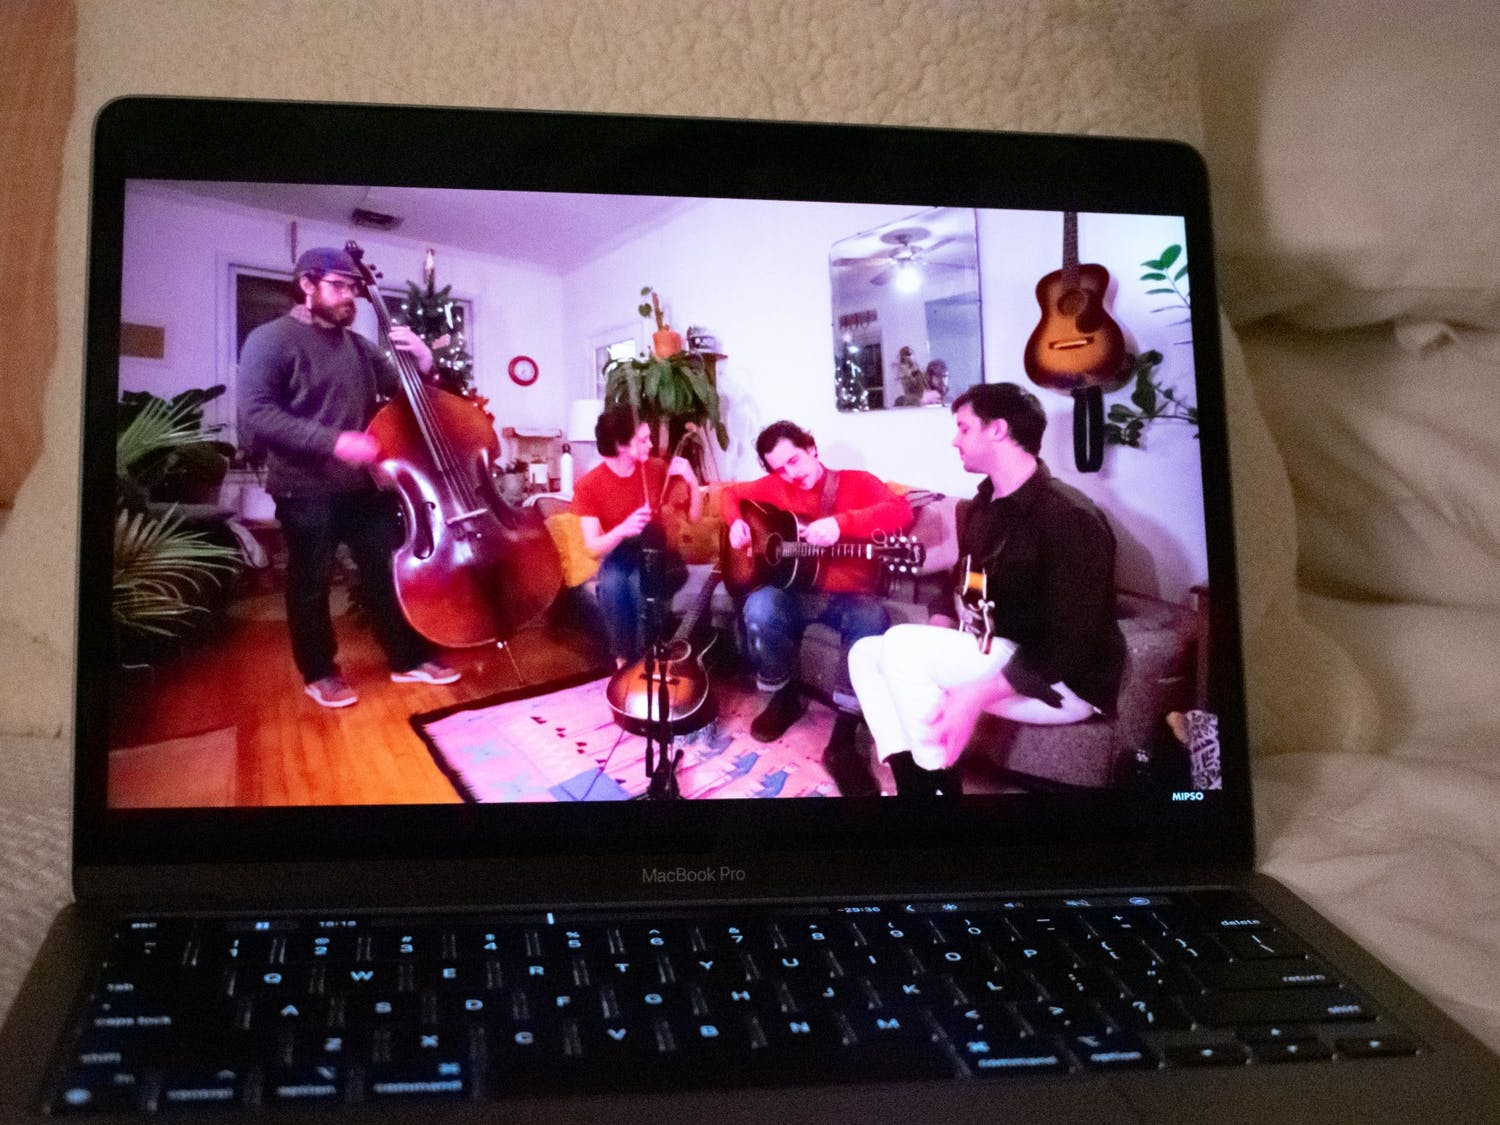 """DTH Photo Illustration. The band Mipso gives a virtual concert as a part of their """"Living Room Tour,"""" which allows fans to watch the band play while also keeping everyone safe during the COVID-19 pandemic."""